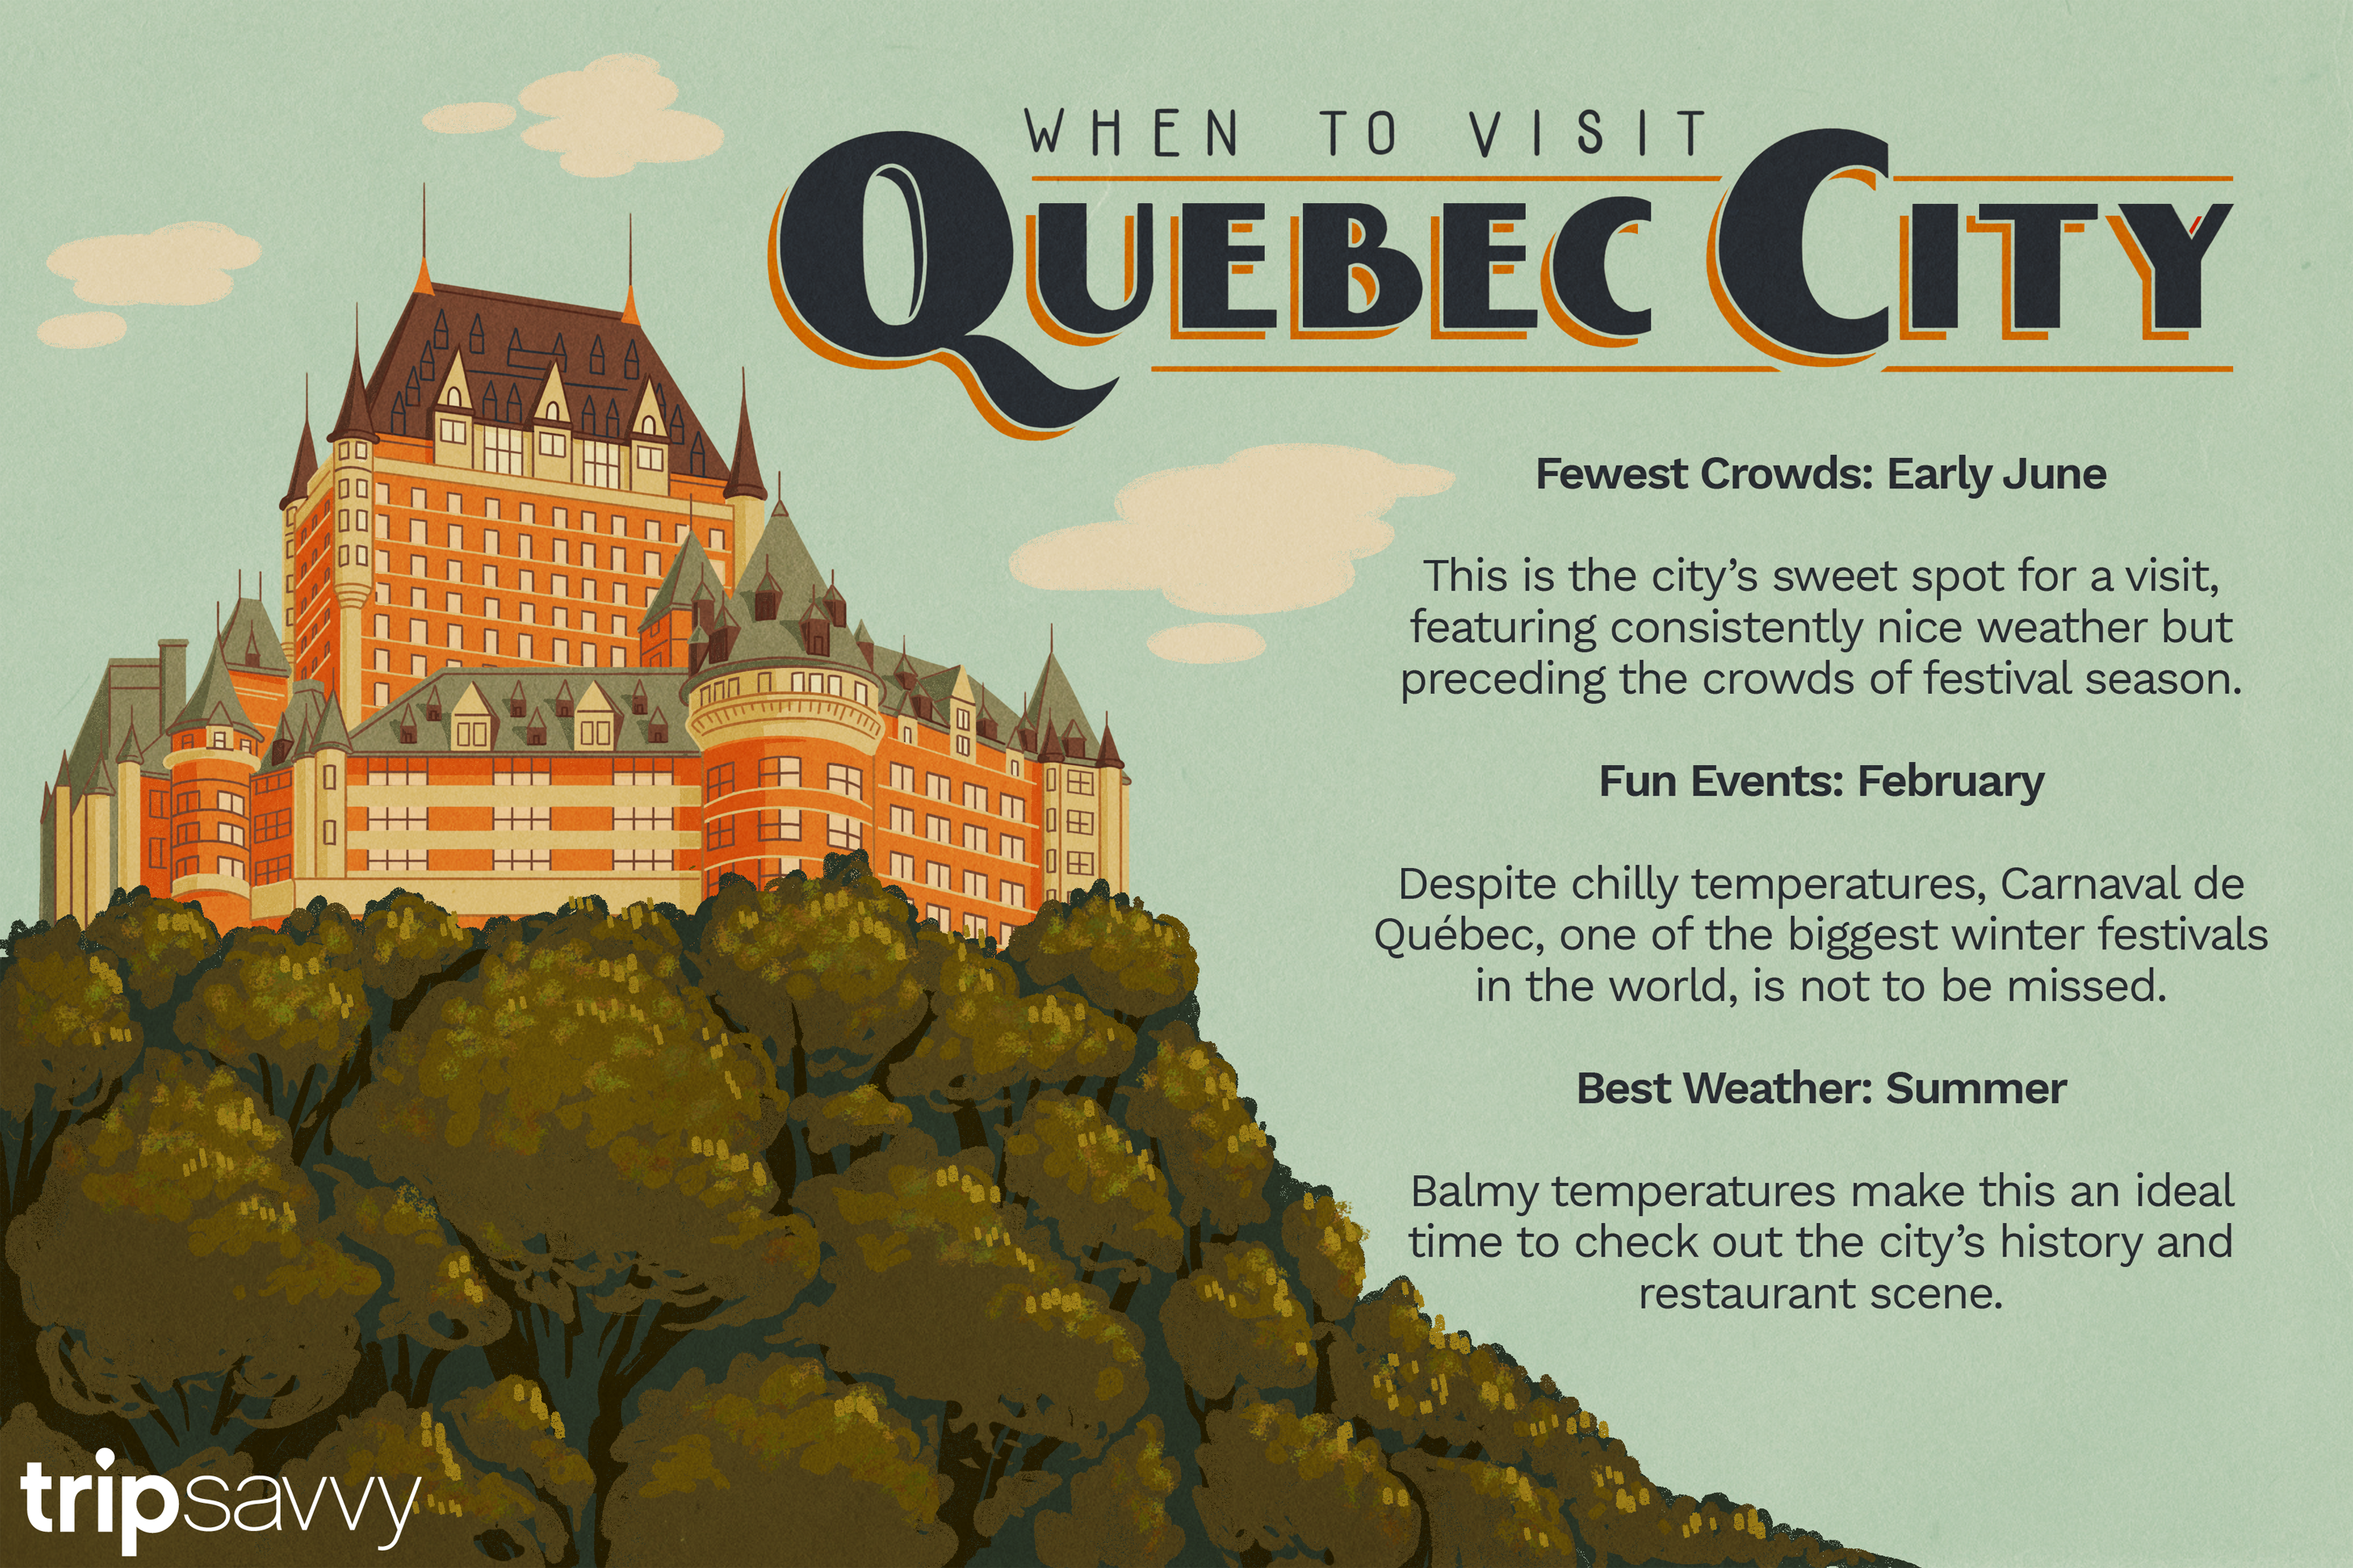 when to visit Quebec City